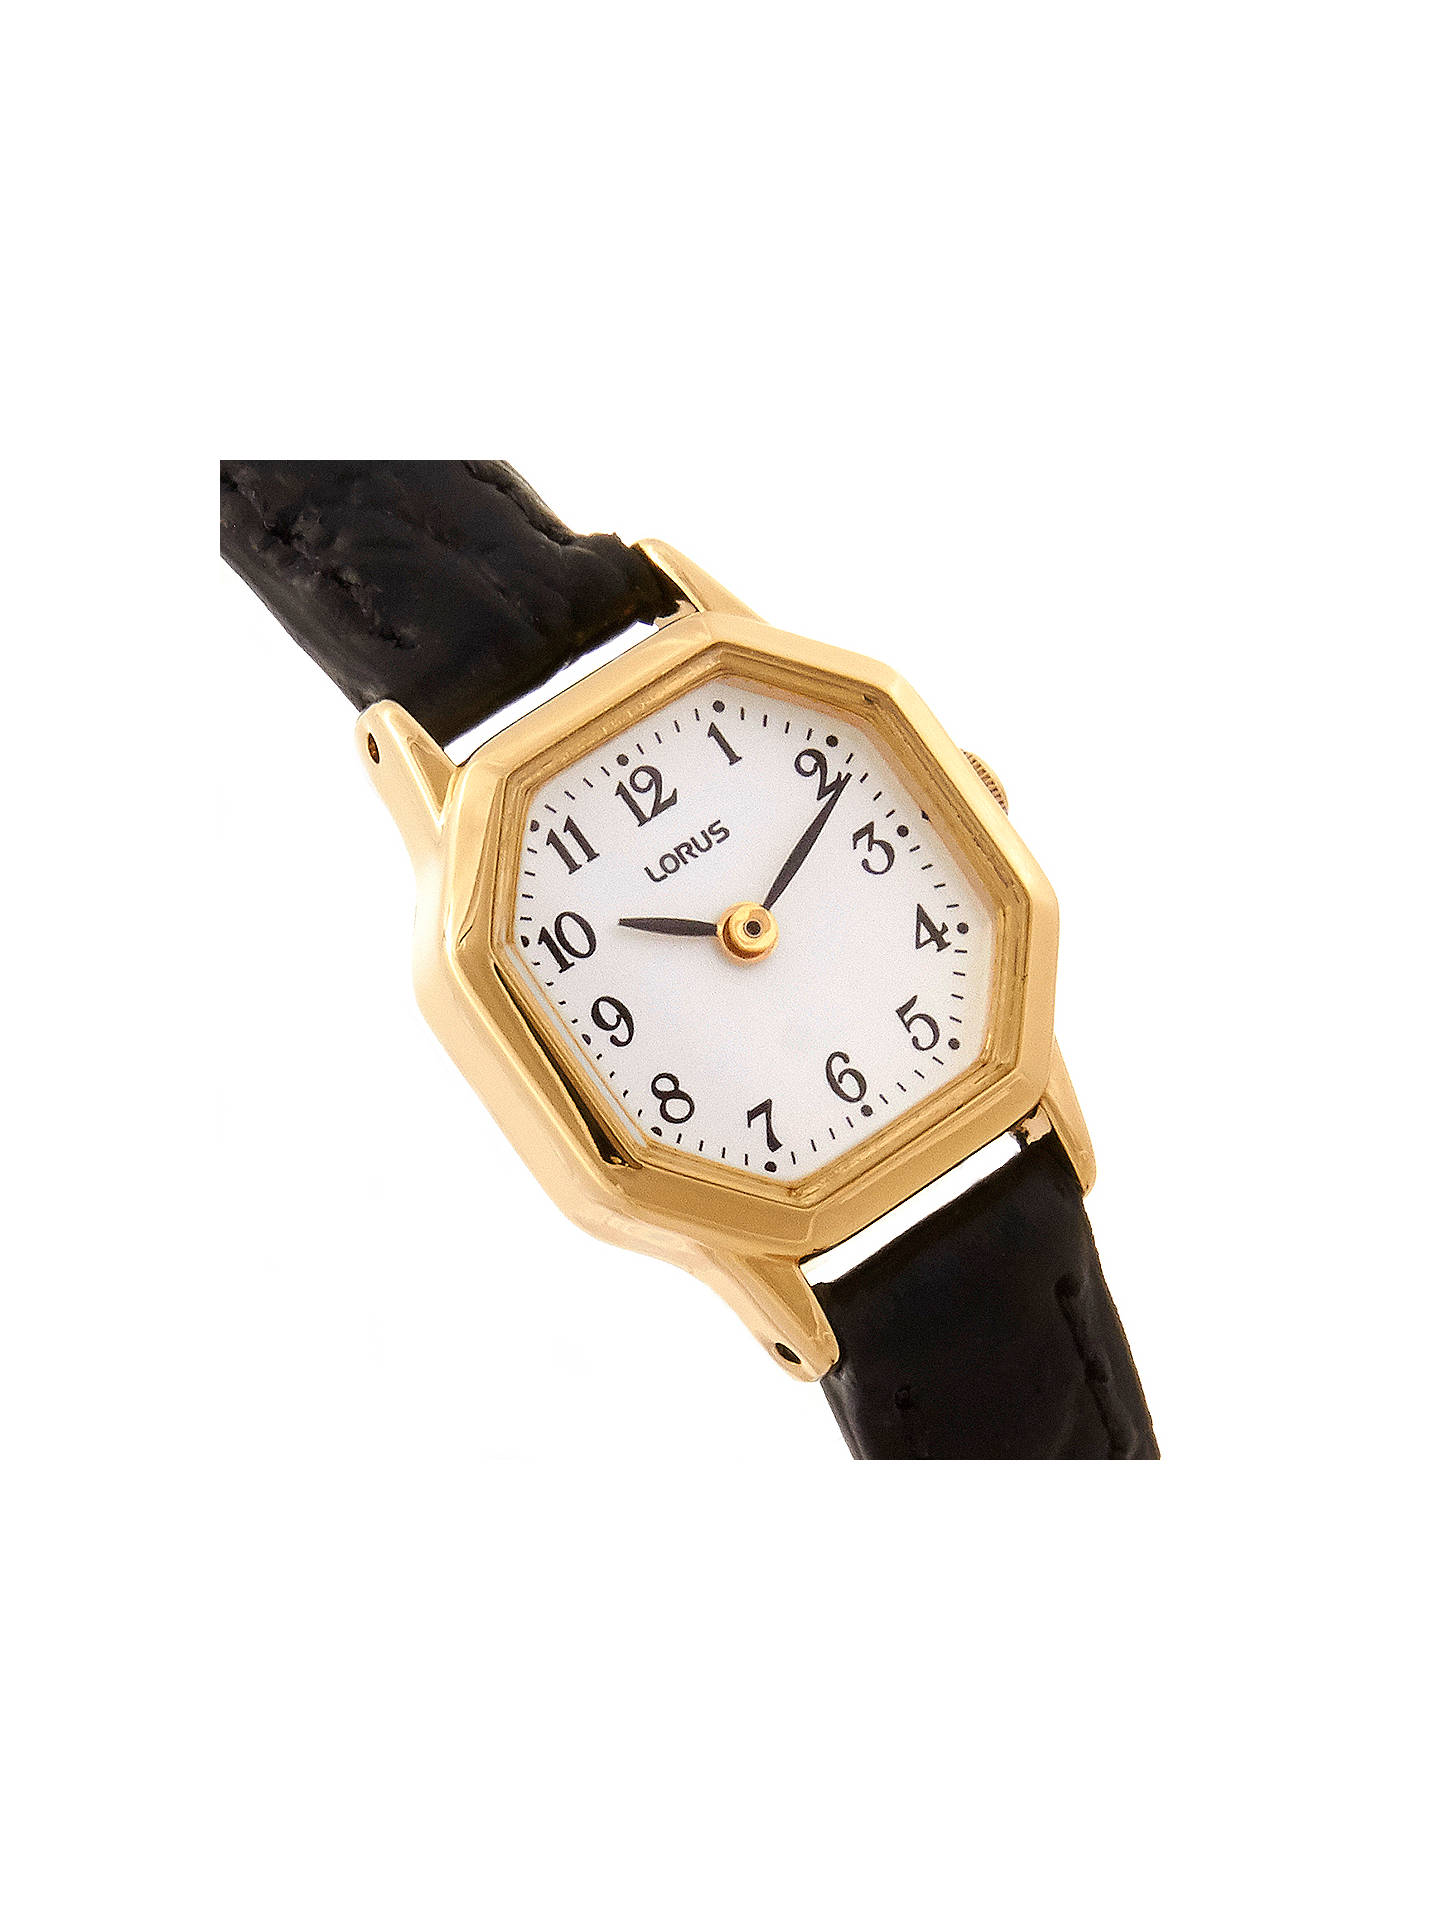 BuyLorus RPG40BX8 Women's Hexagonal Dial Leather Strap Watch, Black/White Online at johnlewis.com